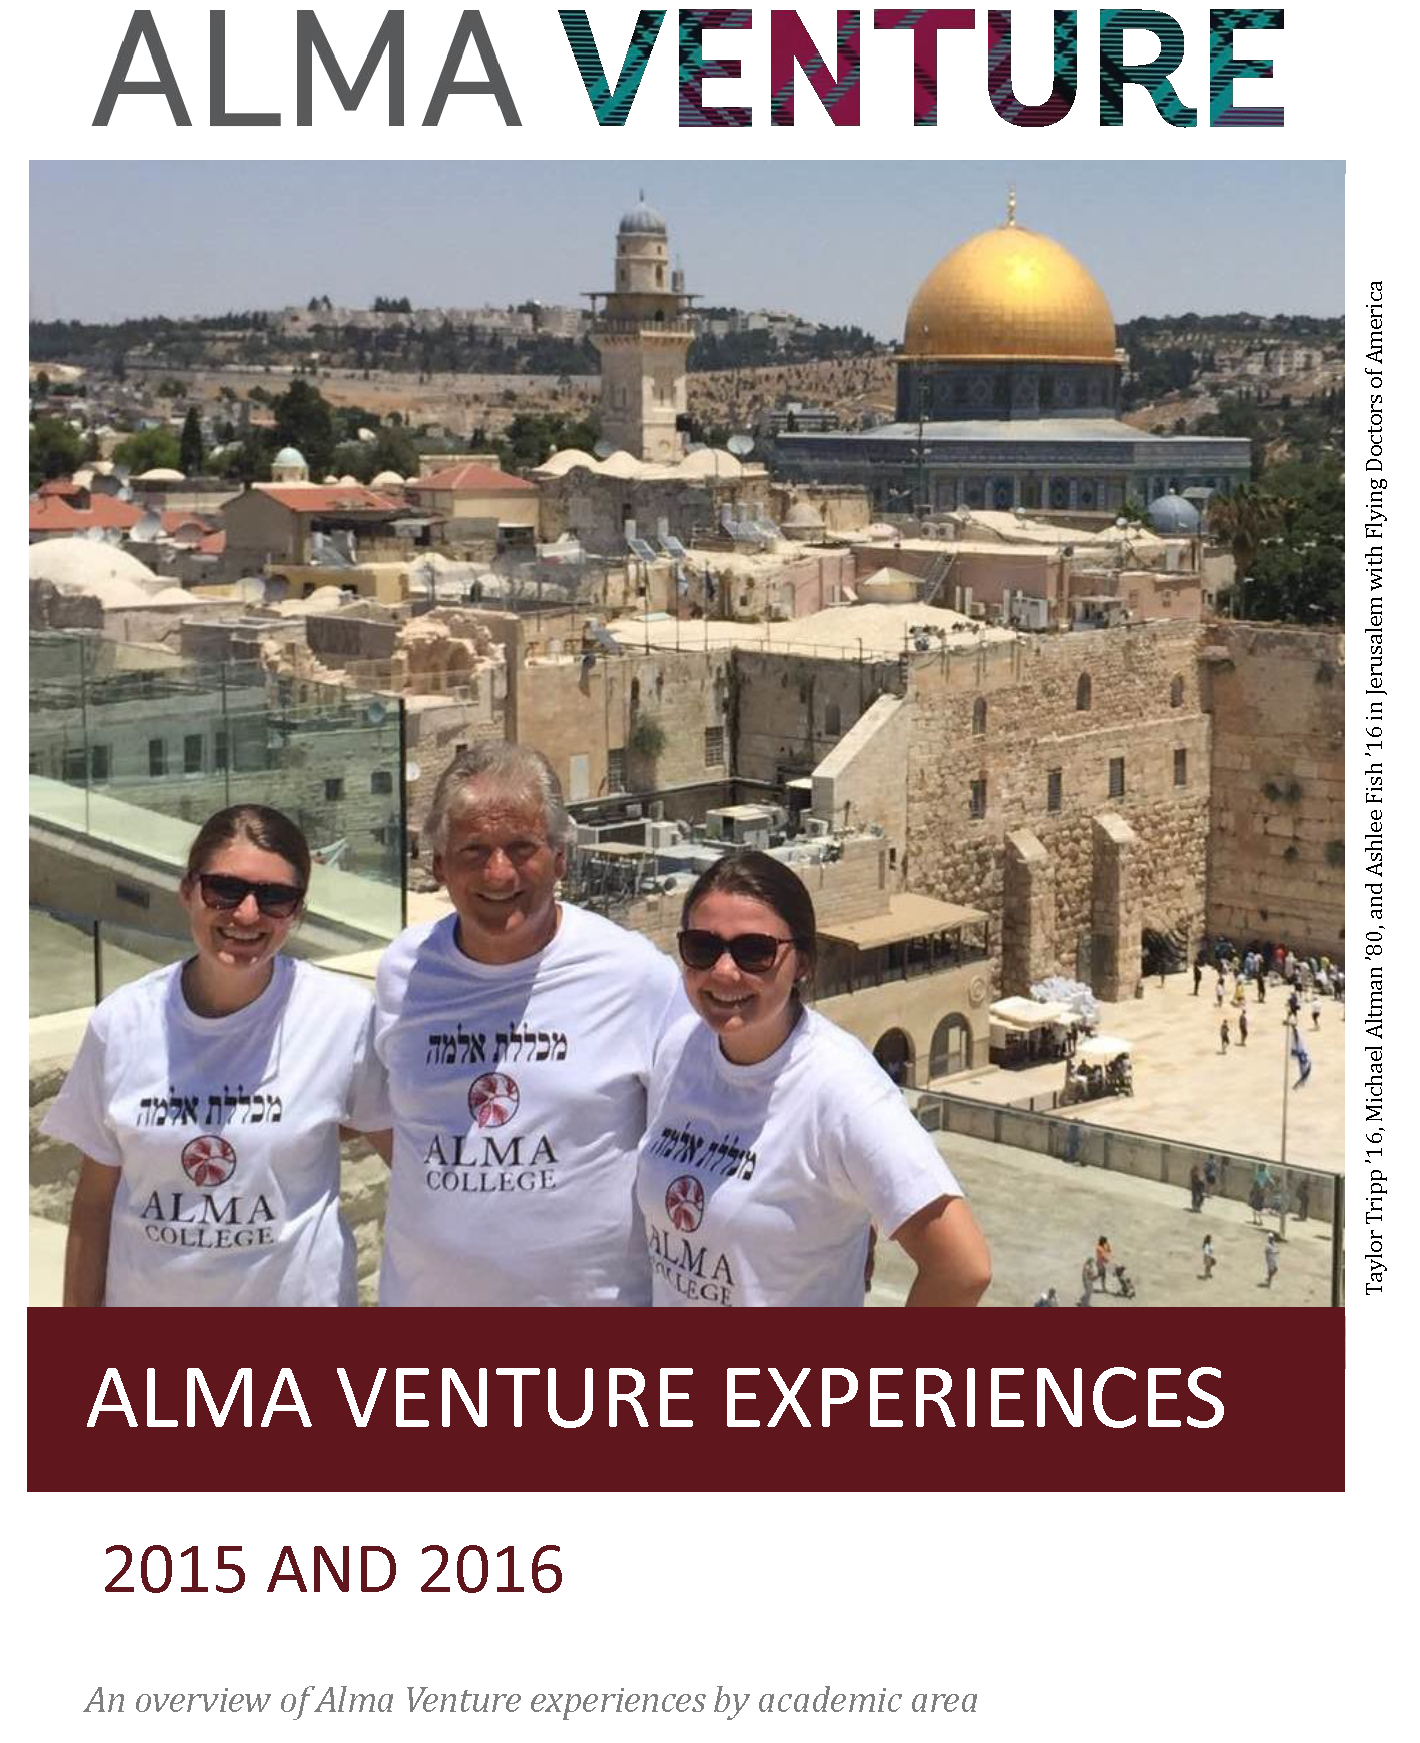 Students with the Flying Doctors of America program on the cover of our 2015-2016 Venture experiences overview.